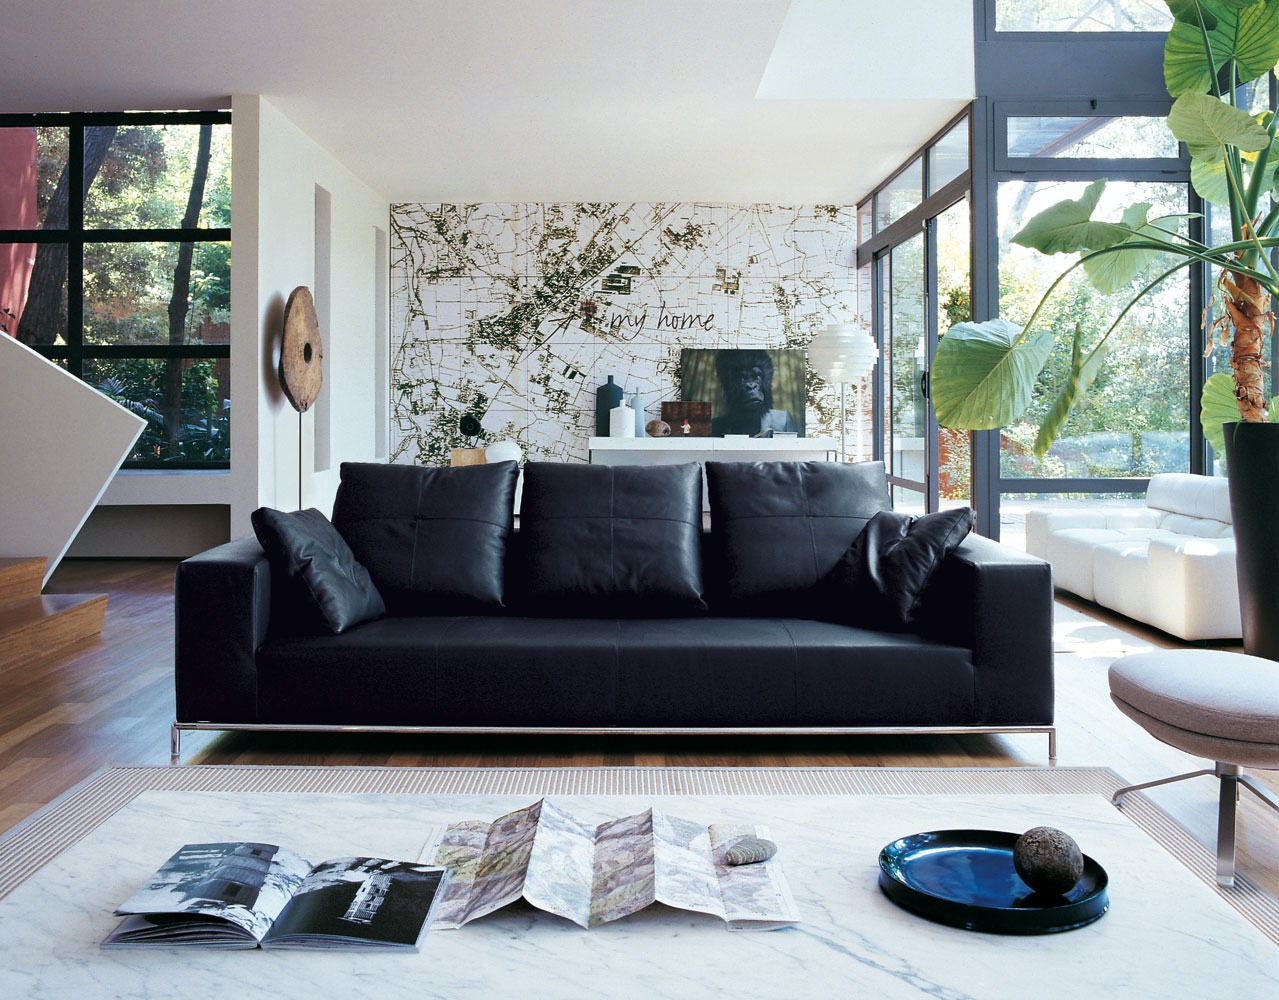 Black leather sofa interior design ideas for Sofa interior design